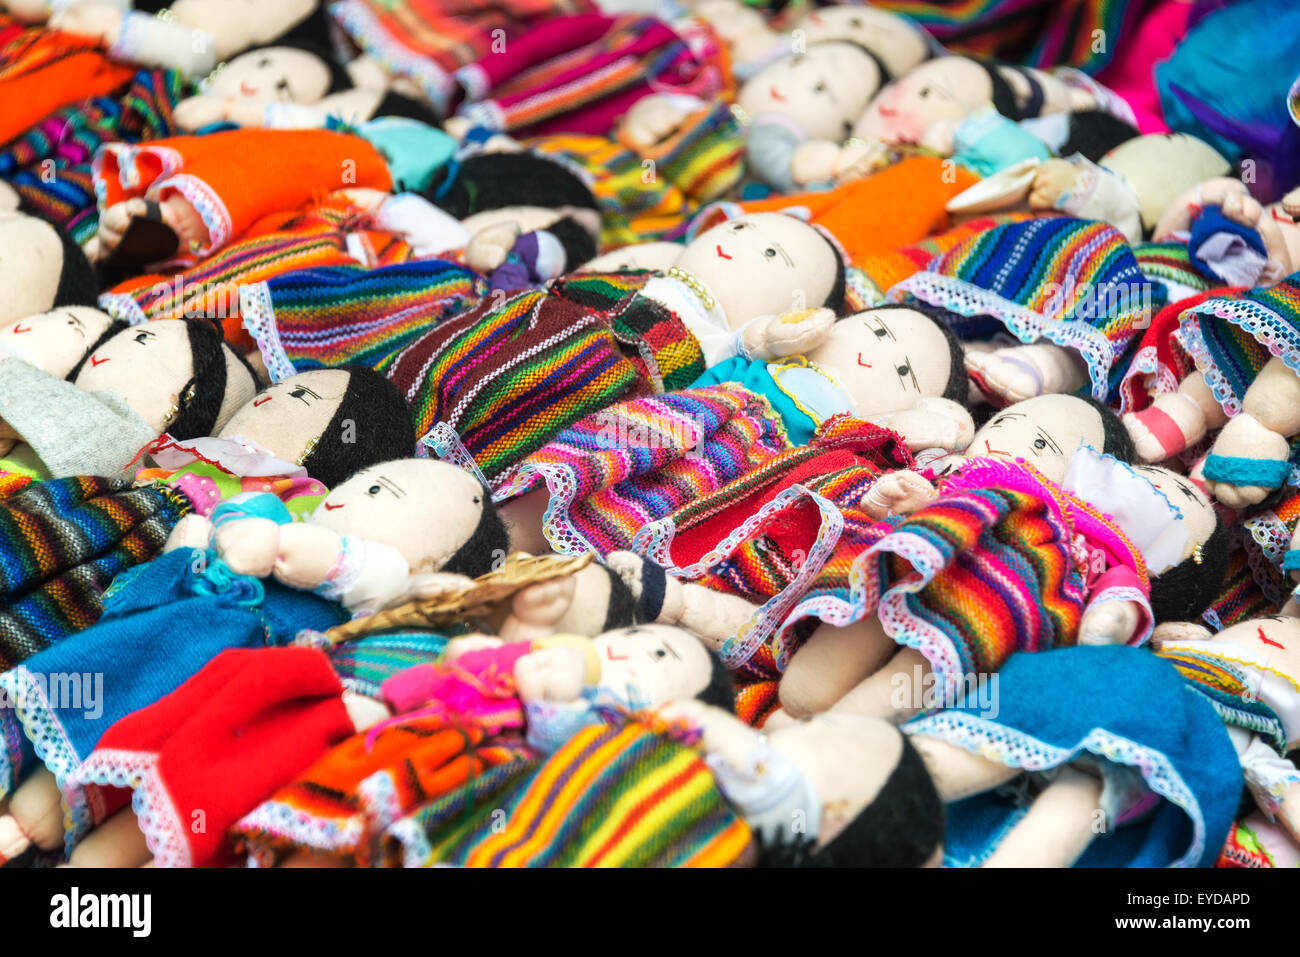 Souvenir dolls for sale in traditional clothing in Otavalo, Ecuador - Stock Image